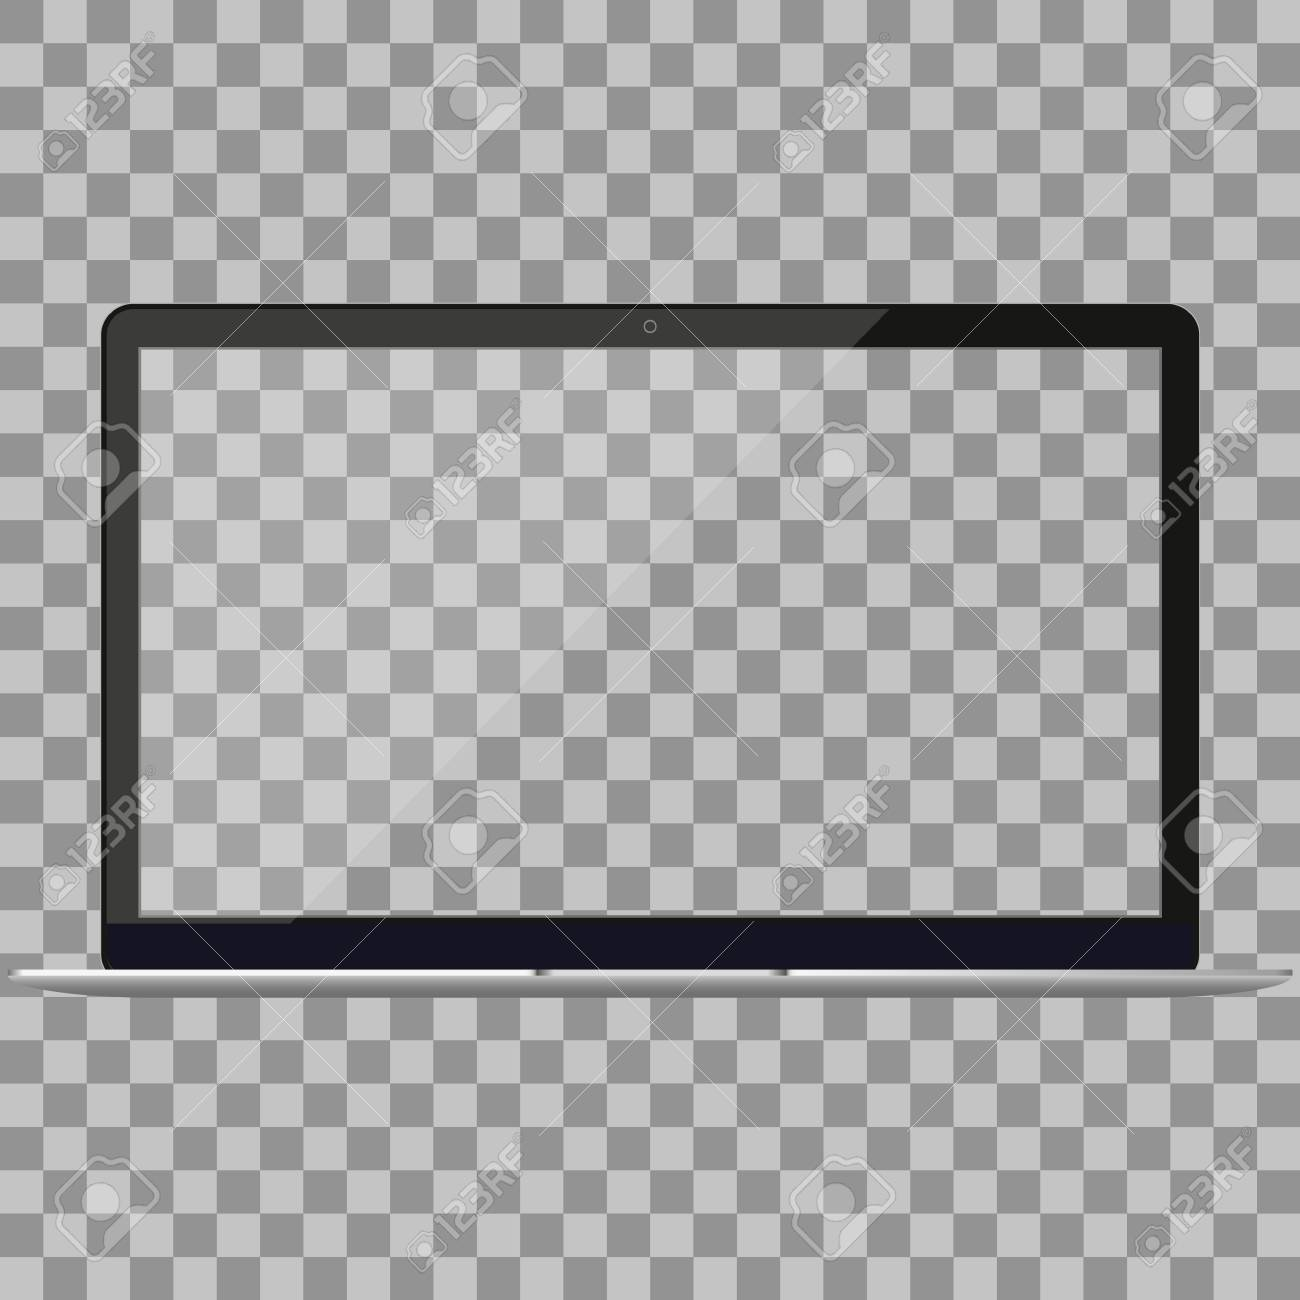 Laptop in Macbook Air style mockup with blank screen - front